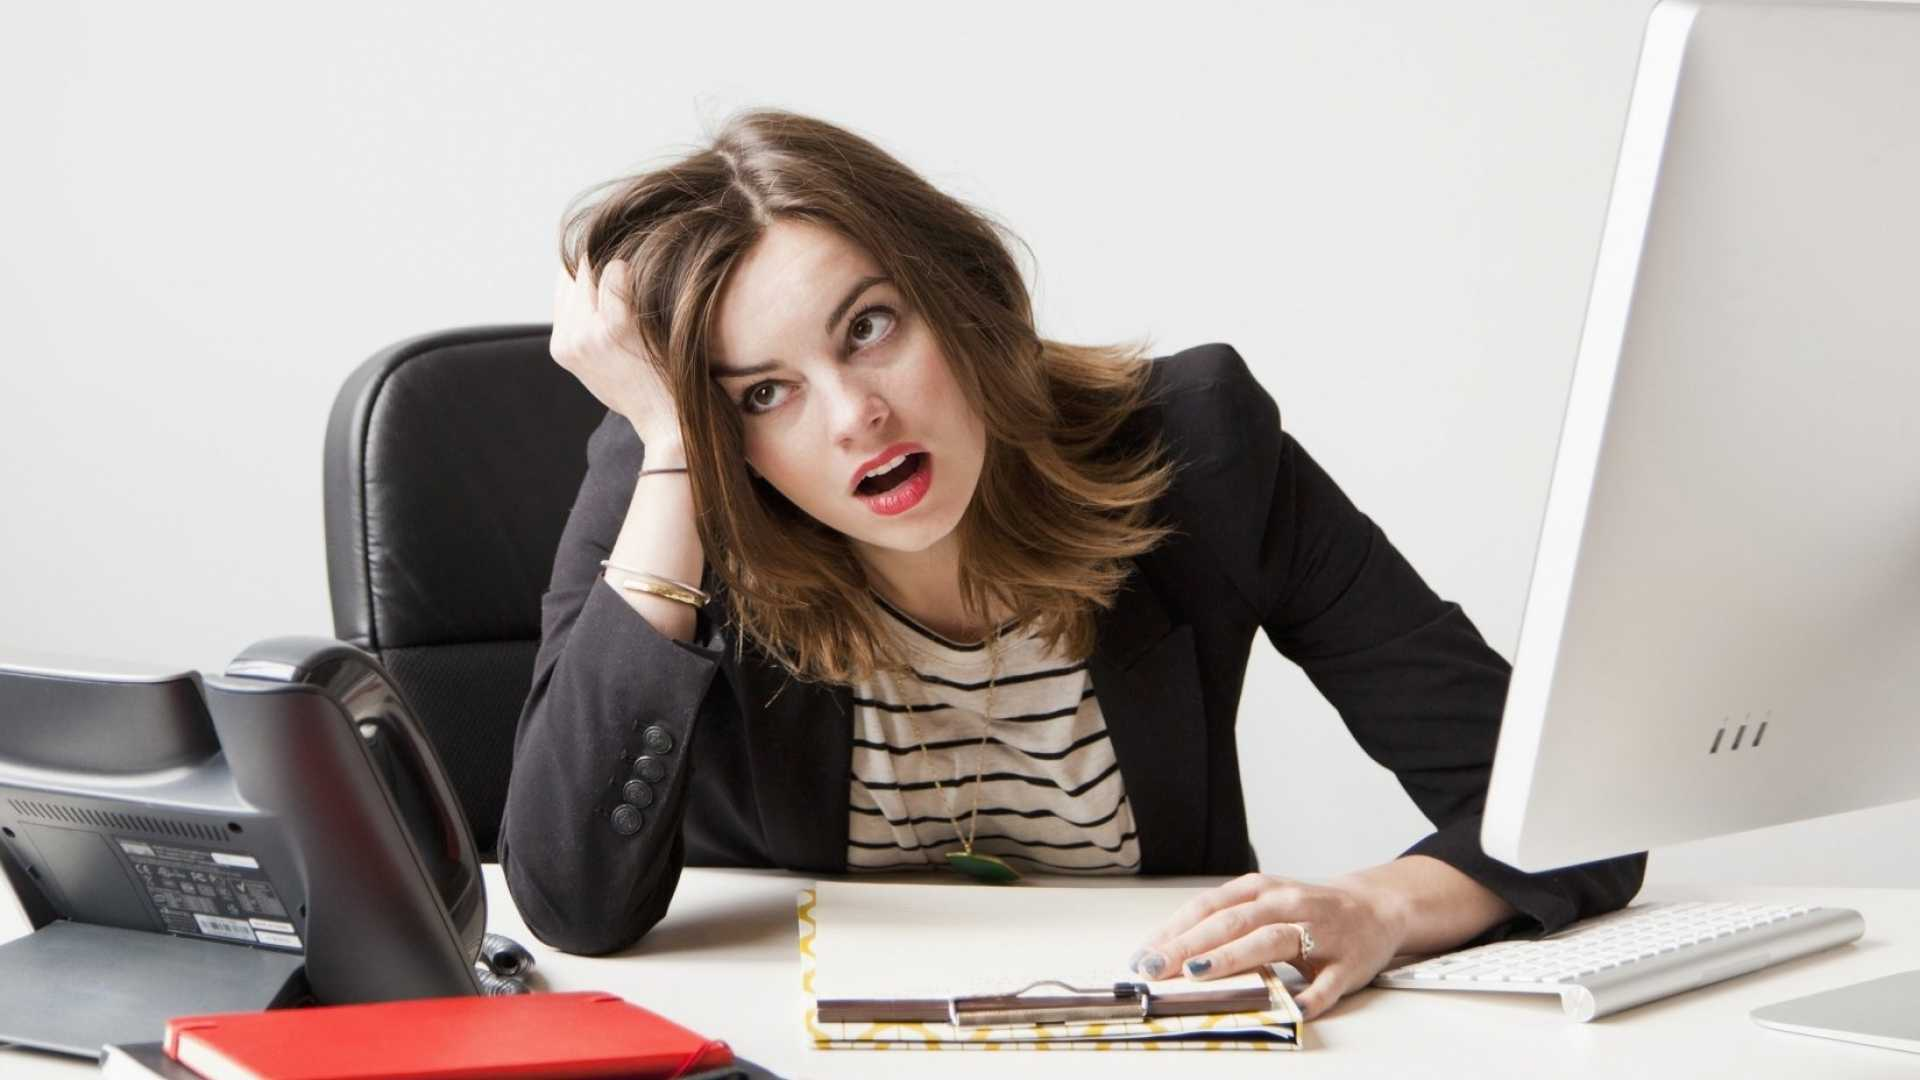 3 Ways to Avoid Getting Stuck in a Career You Hate